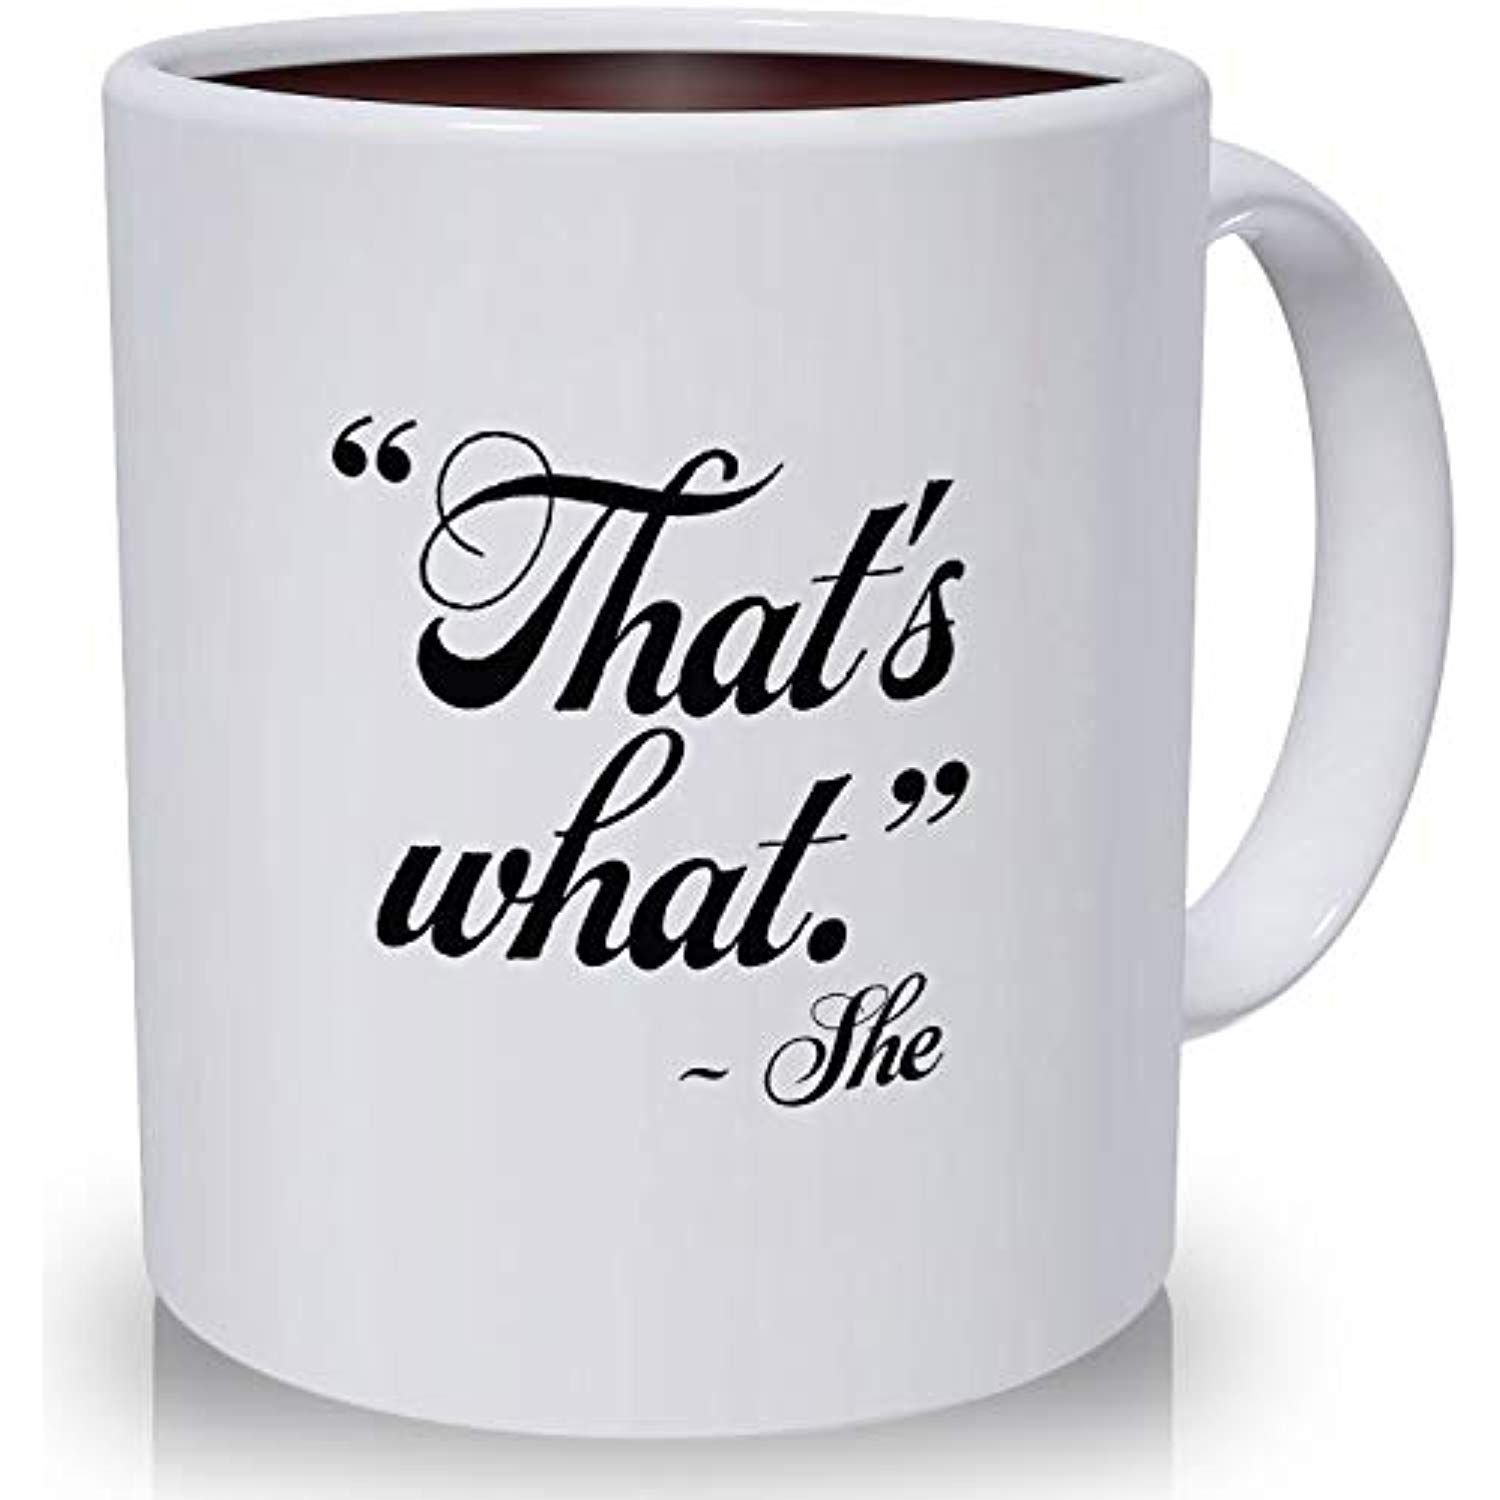 The fice Merchandise 11 oz Funny Porcelain Coffee Mug is a